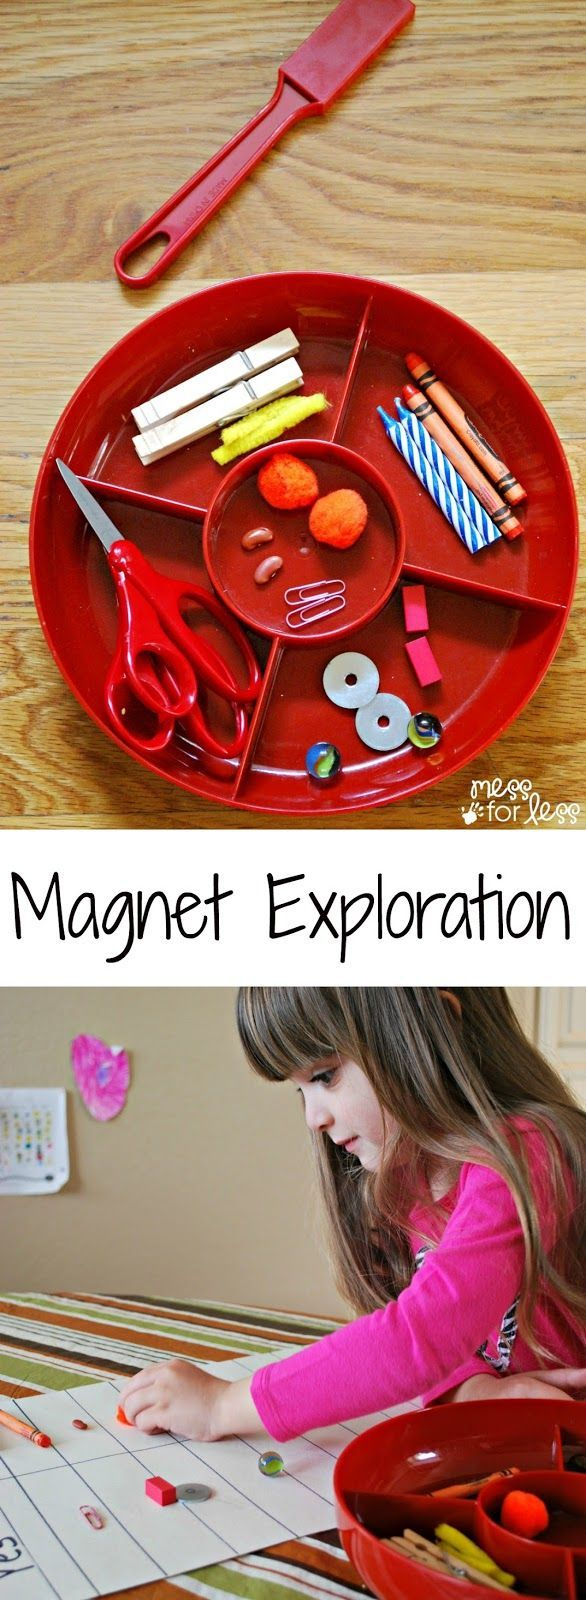 17 best images about cool  u0026 creative indoor fun on pinterest